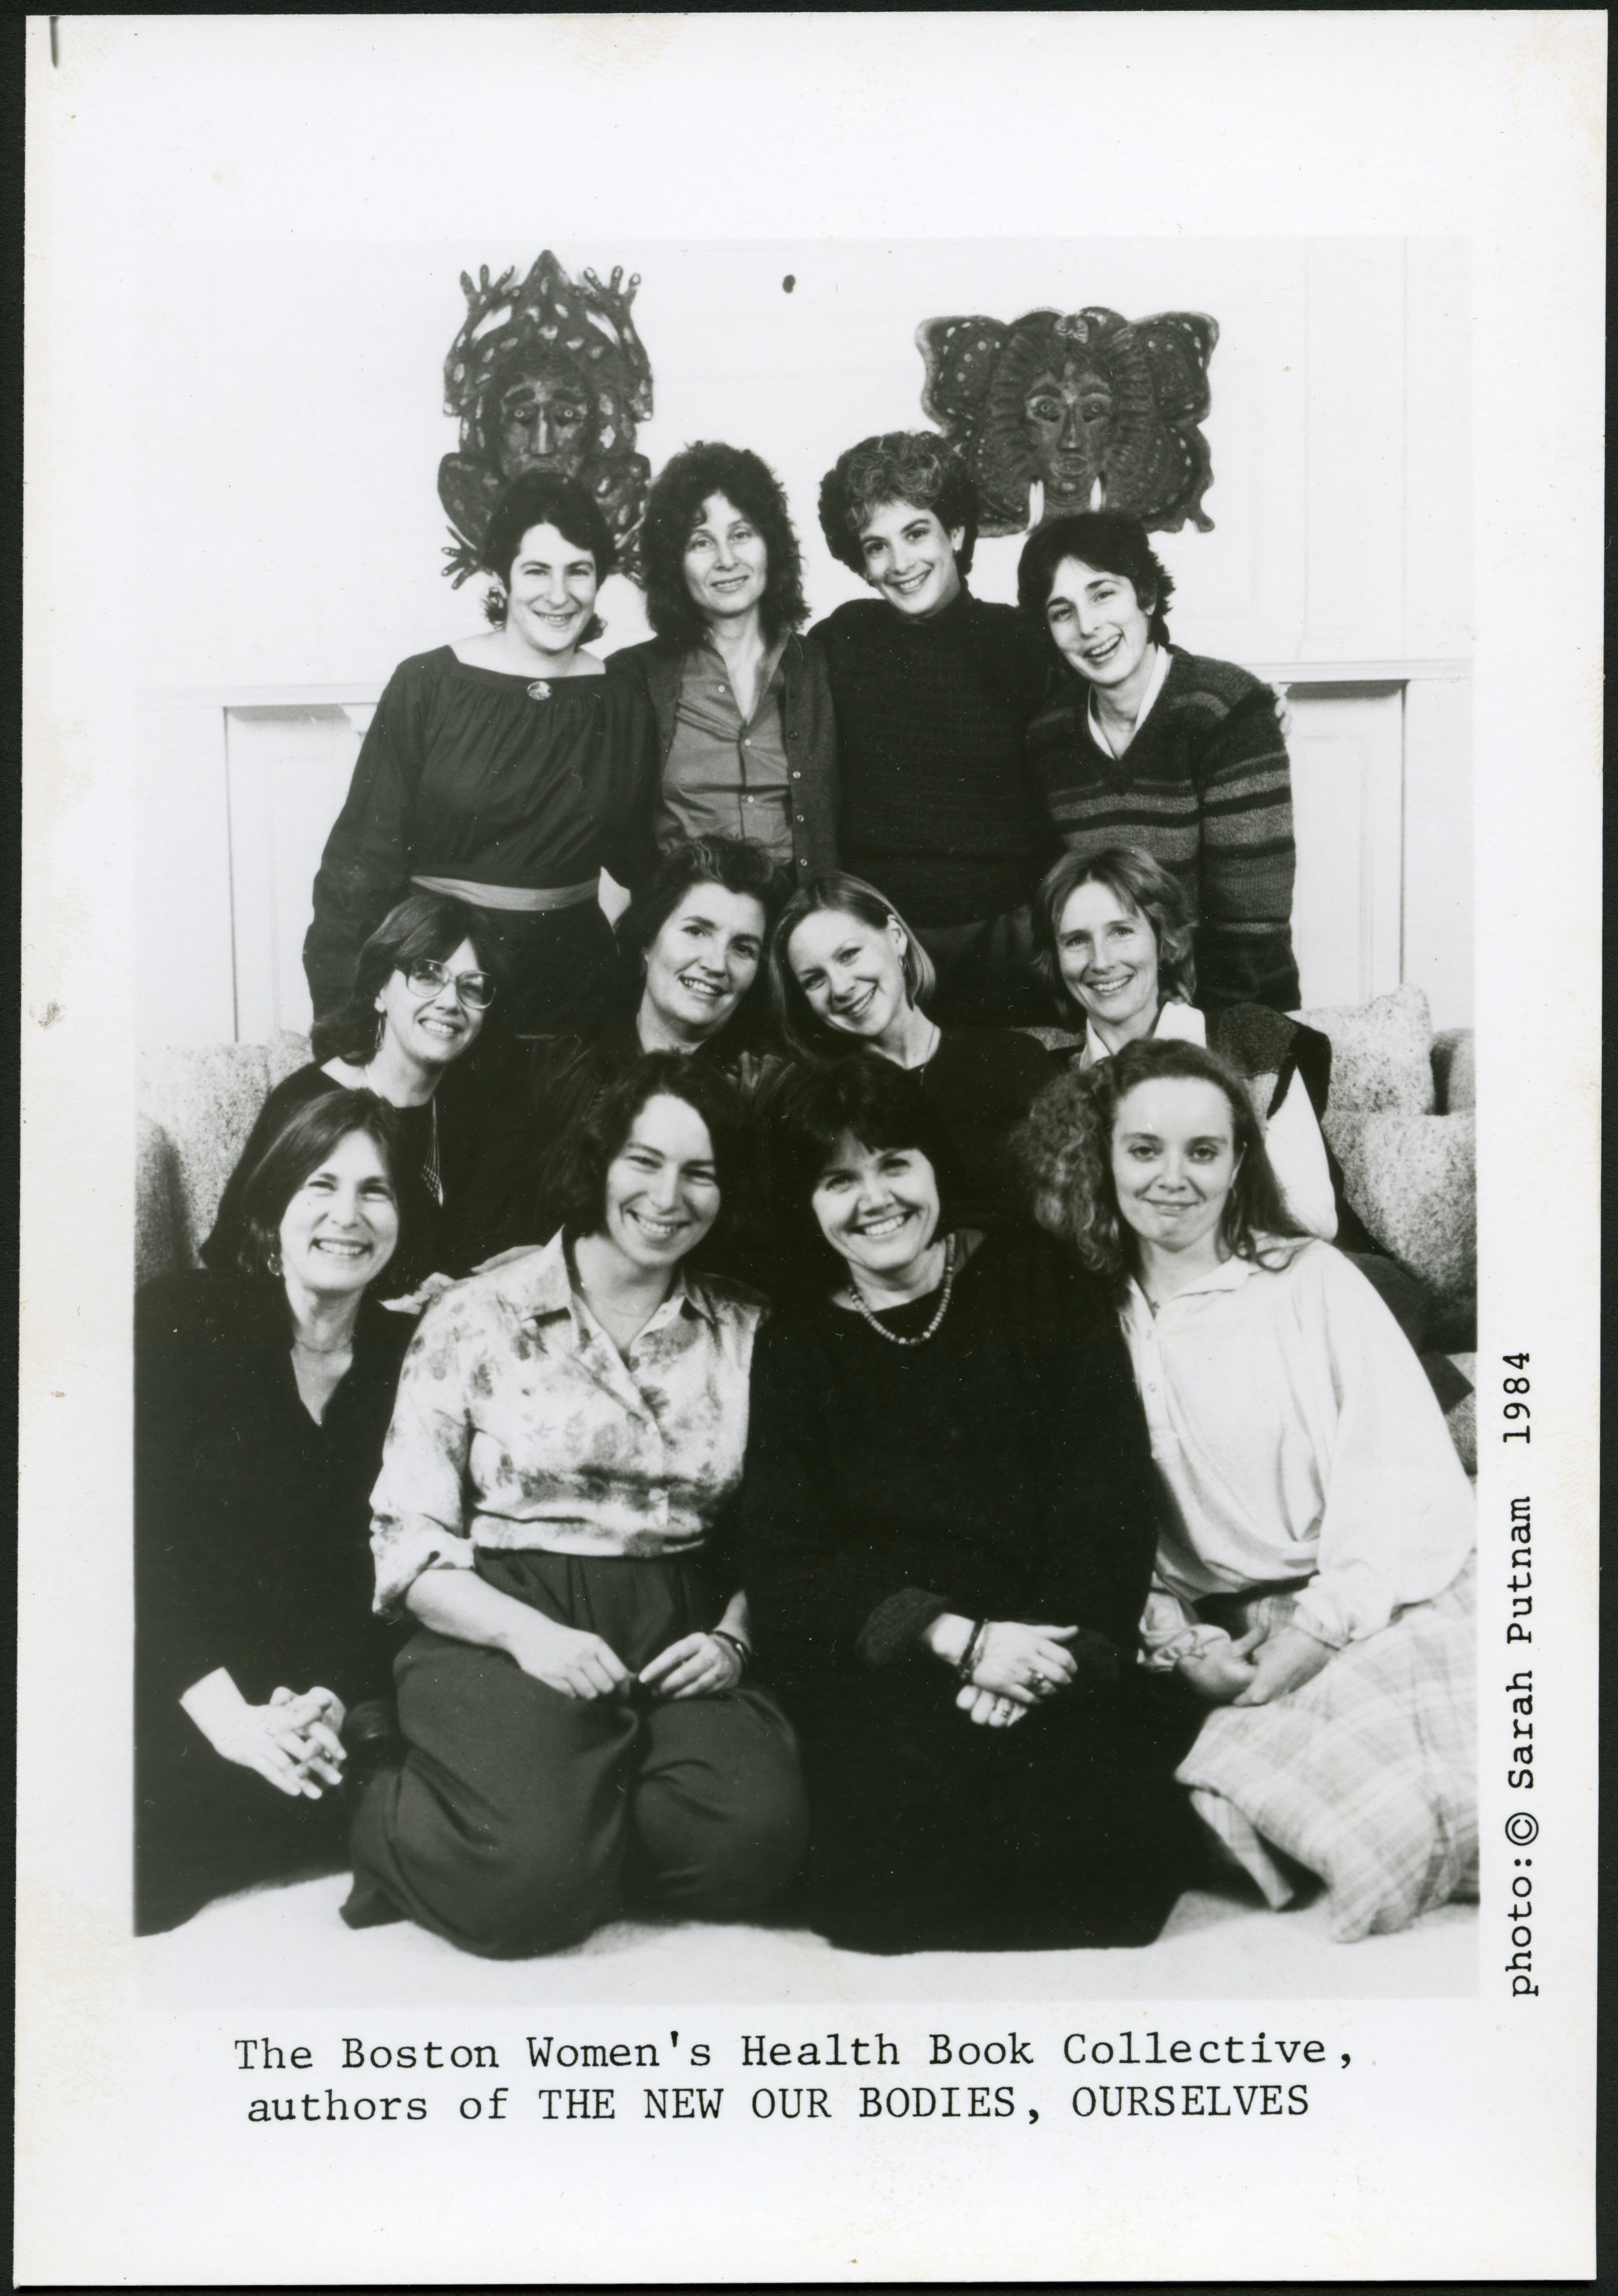 Founders of the Boston Women's Health Book Collective, publicity photograph, copy print